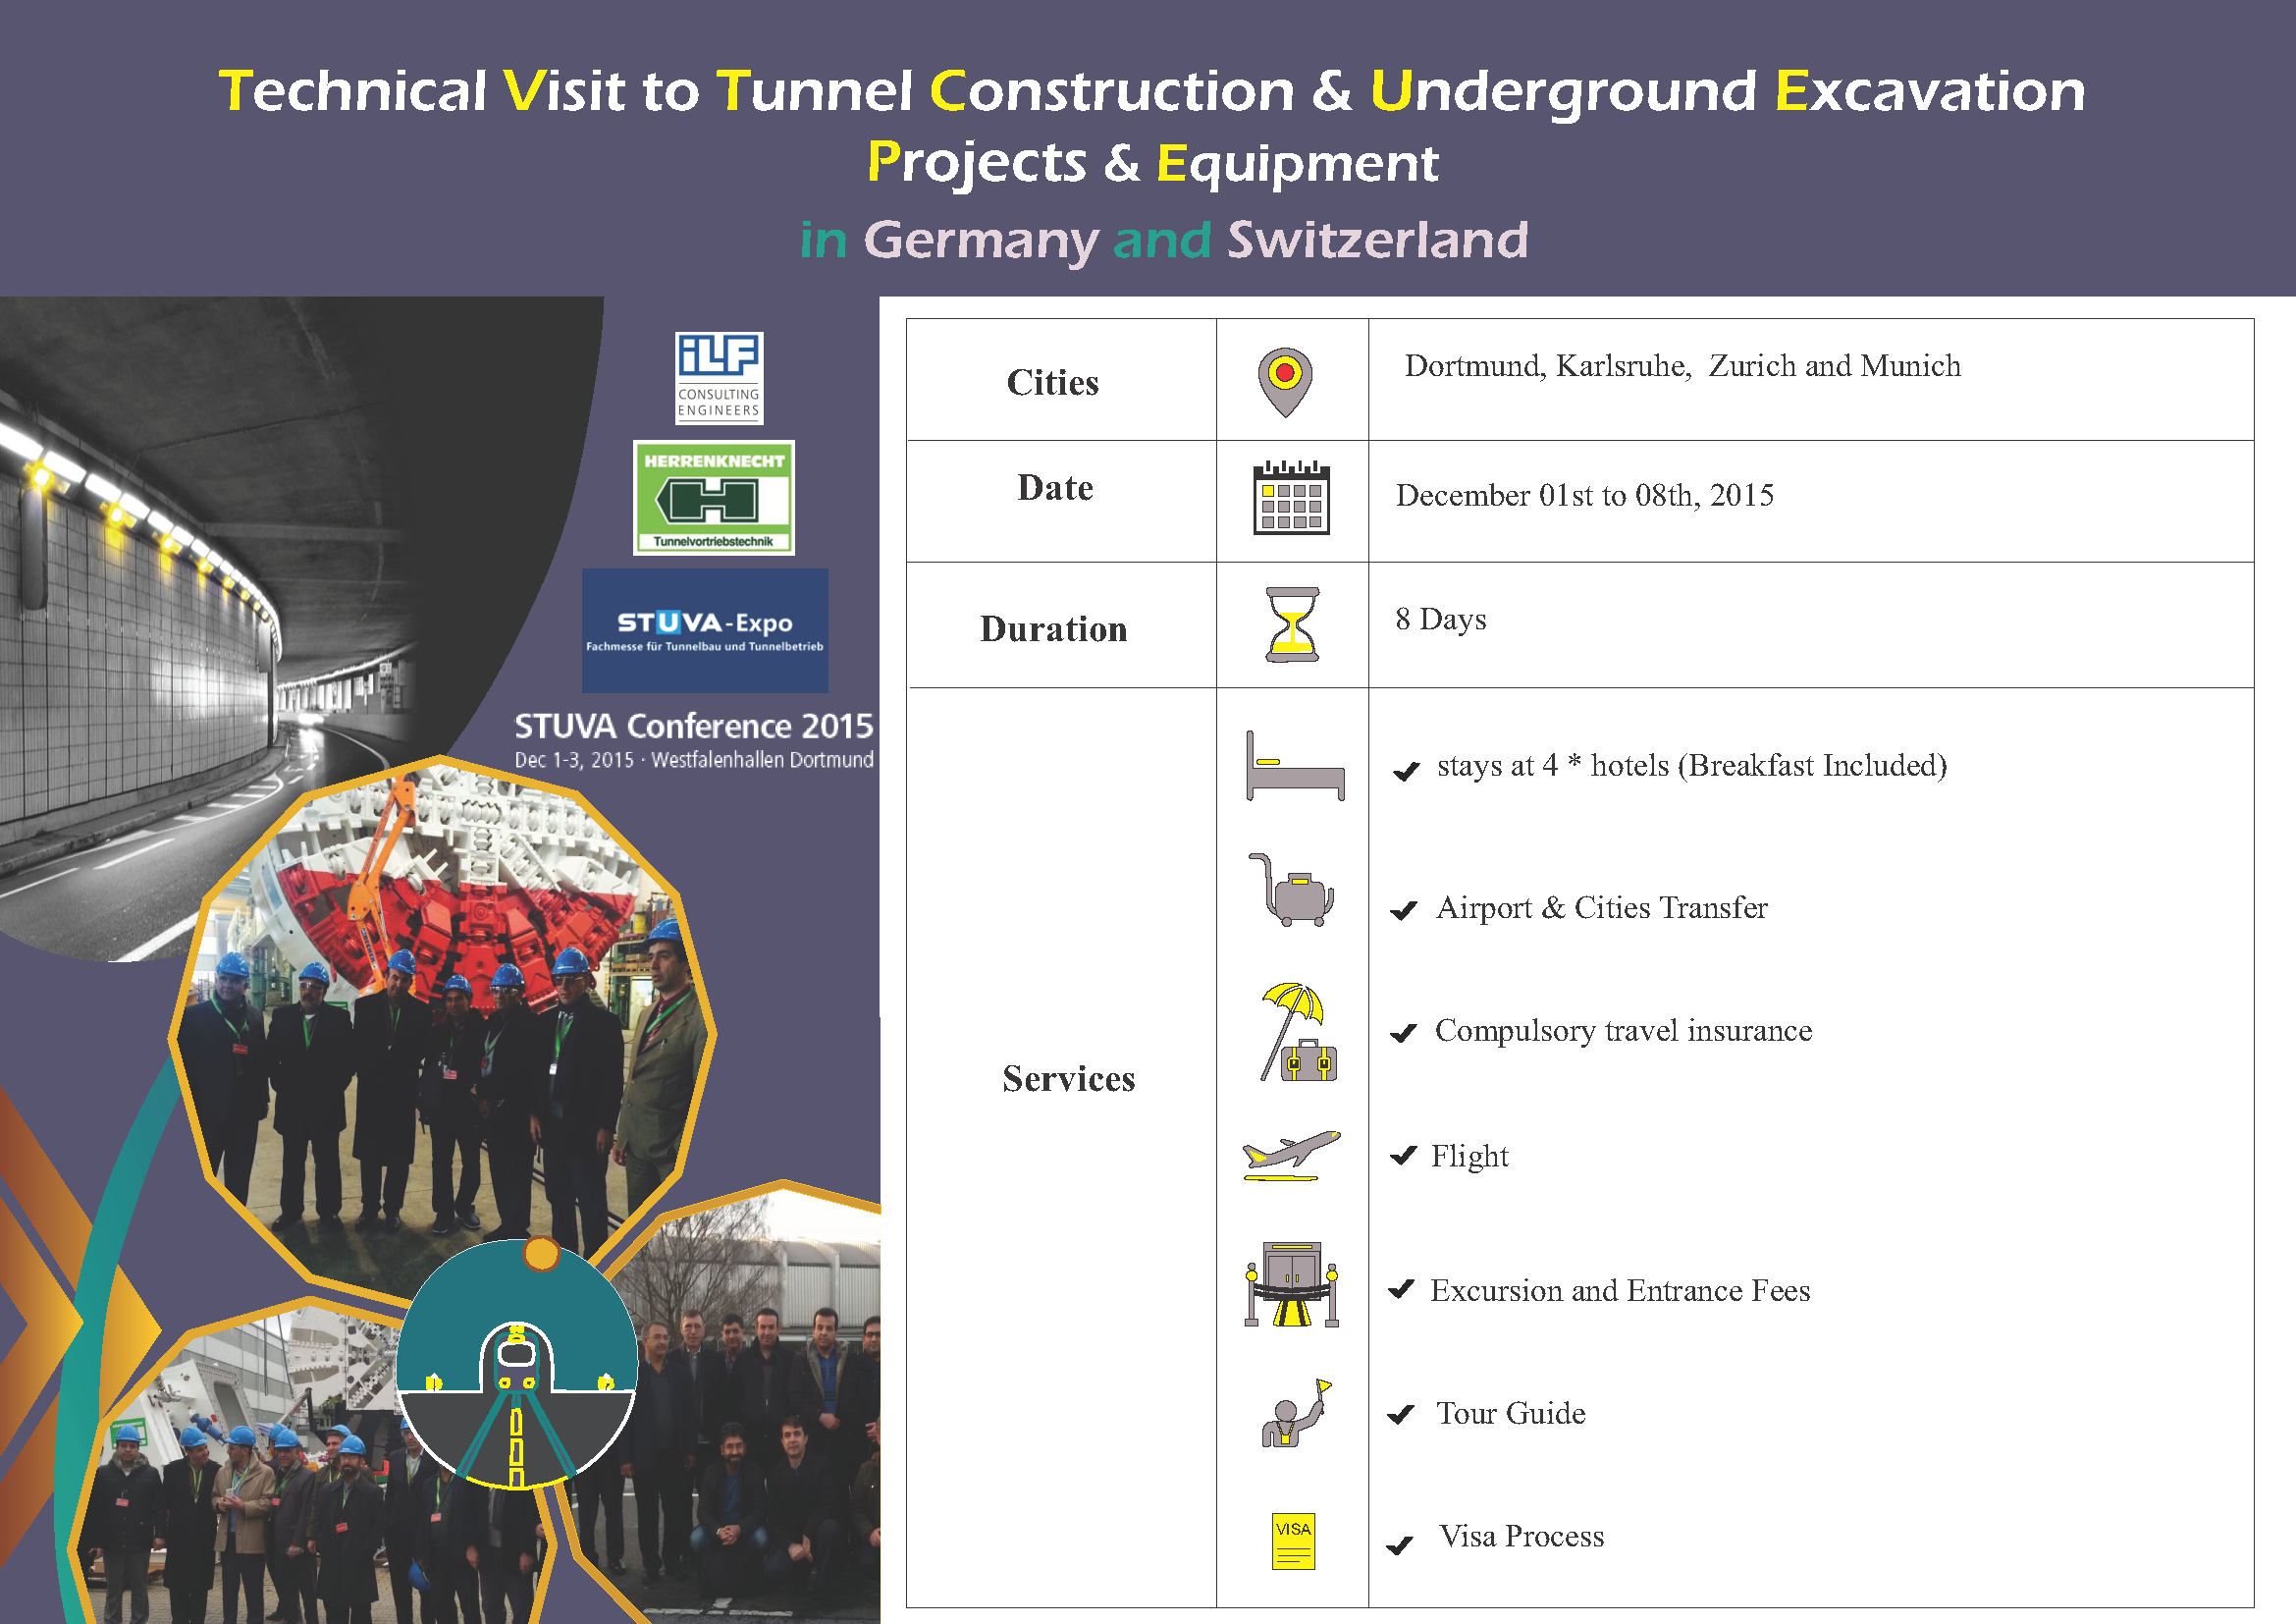 Technical Visit to Tunnel Construction & Underground Excavation Projects & Equipment, Dec. 2015